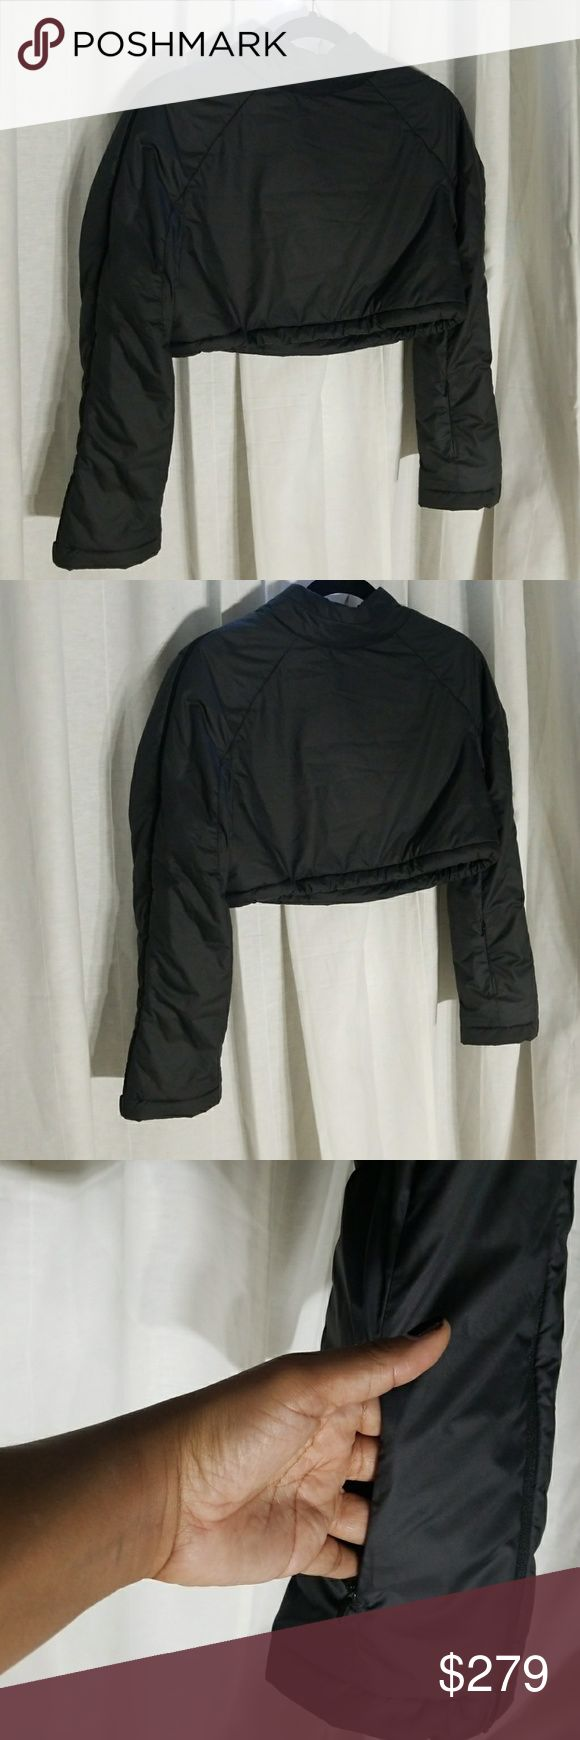 Lulu lemon short puff work out coat. Lululemon work out coat with shoulder open zippers that zip all the way to the arms. Draw string waist and high collar. Color is like a charco Gray. lululemon athletica Jackets & Coats